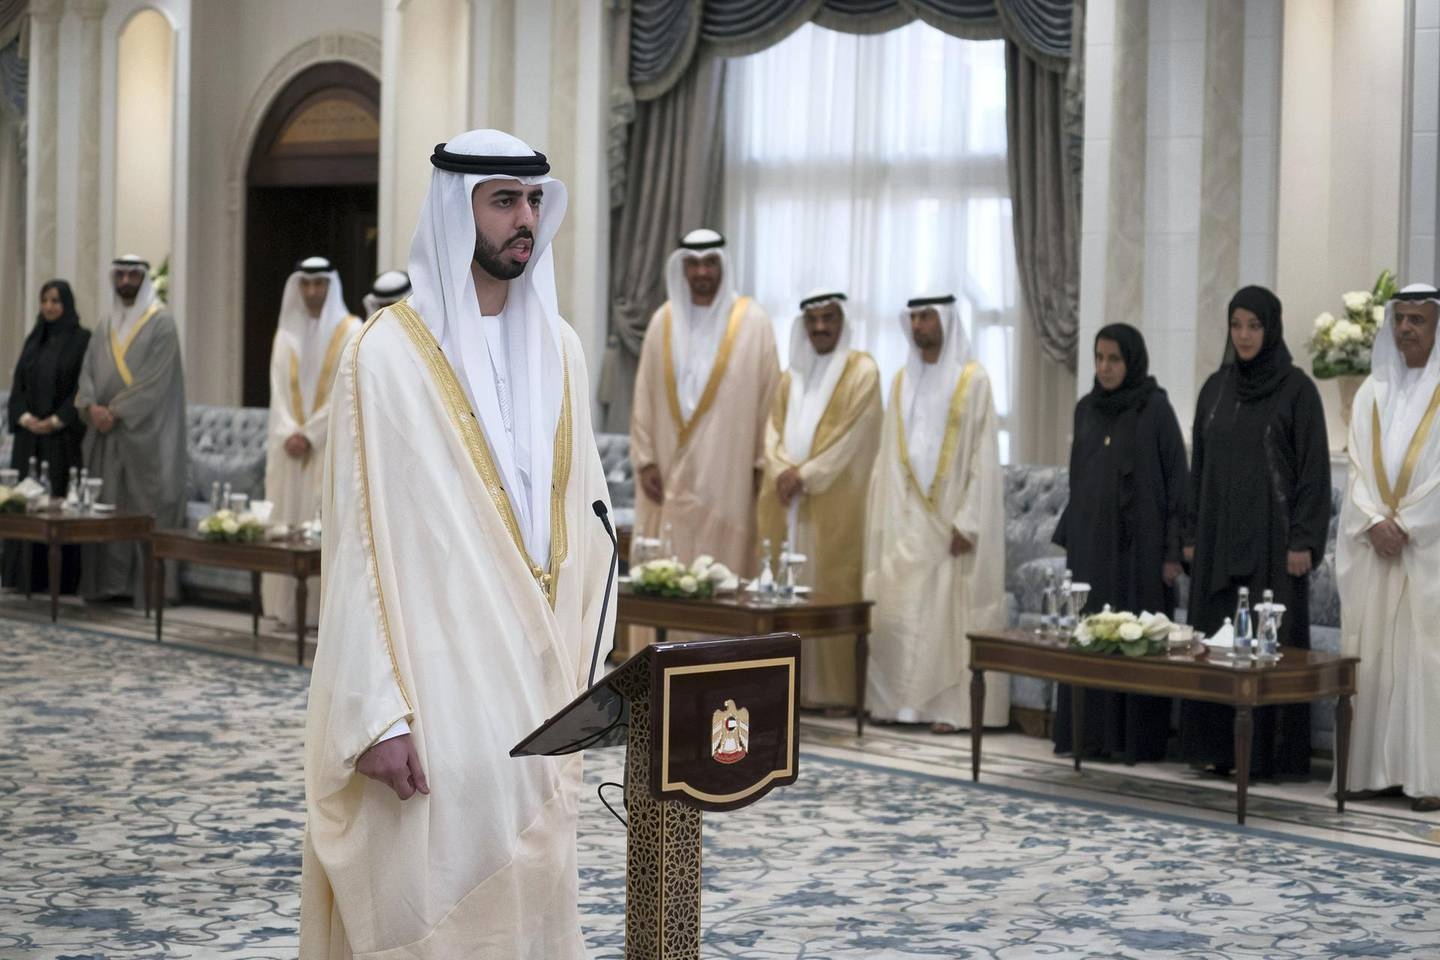 ABU DHABI, UNITED ARAB EMIRATES - October 31, 2017: HE Omar bin Sultan Al Olama, UAE Minister of State for Artificial Intelligence, gives his oath, during a swearing-in ceremony for newly appointed ministers, at Mushrif Palace.  ( Hamad Al Kaabi / Crown Prince Court - Abu Dhabi ) ---